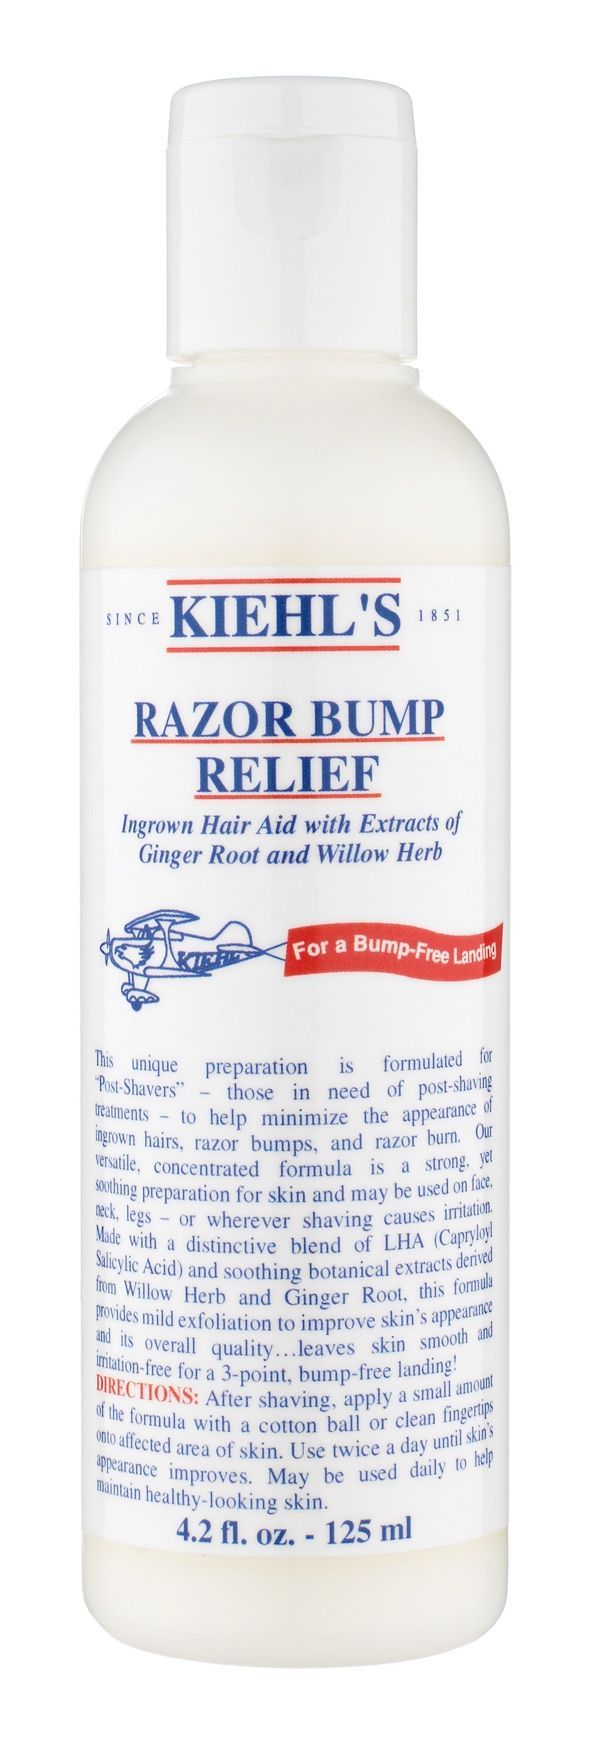 Ingrown hair aid and razor burn treatment. A strong yet soothing preparation for skin. Provides mild exfoliation to improve skin's appearance and reduce irritation. May be used on face neck legs or wherever shaving causes irritation. 4.2 oz (125 ml)